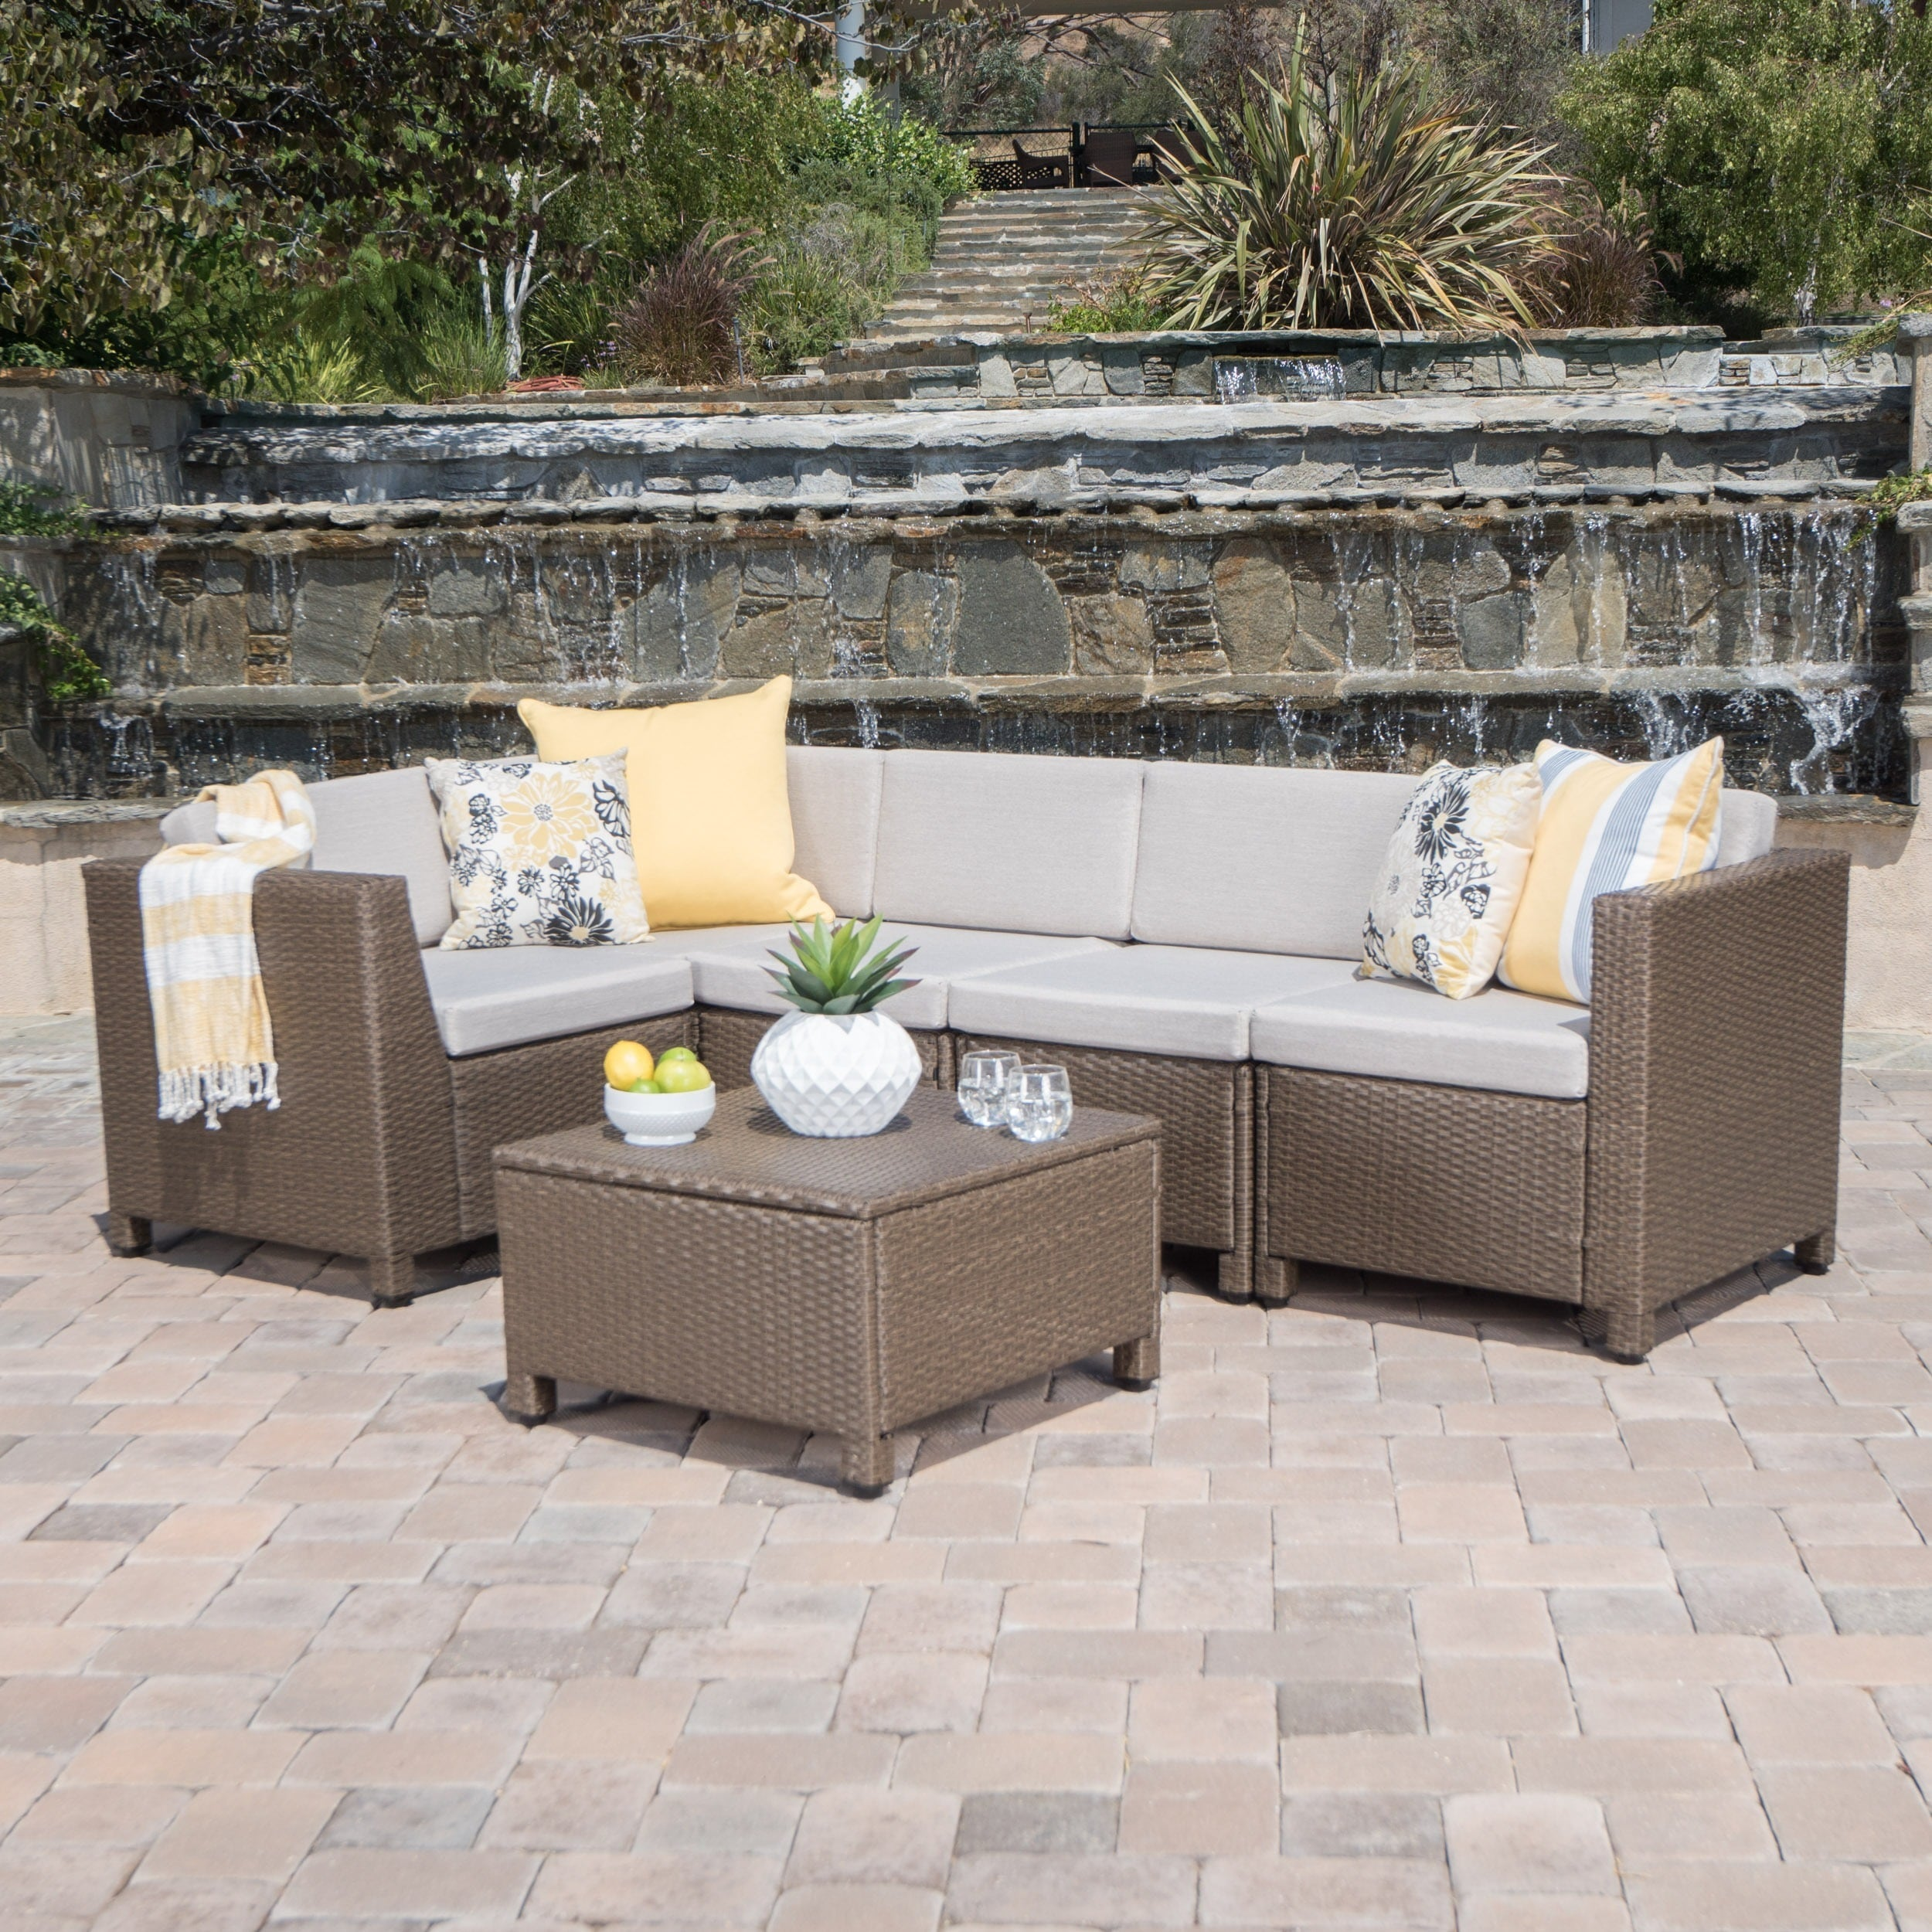 choice set outdoor furniture walmart products bench table df folding chairs best dining w center garden patio